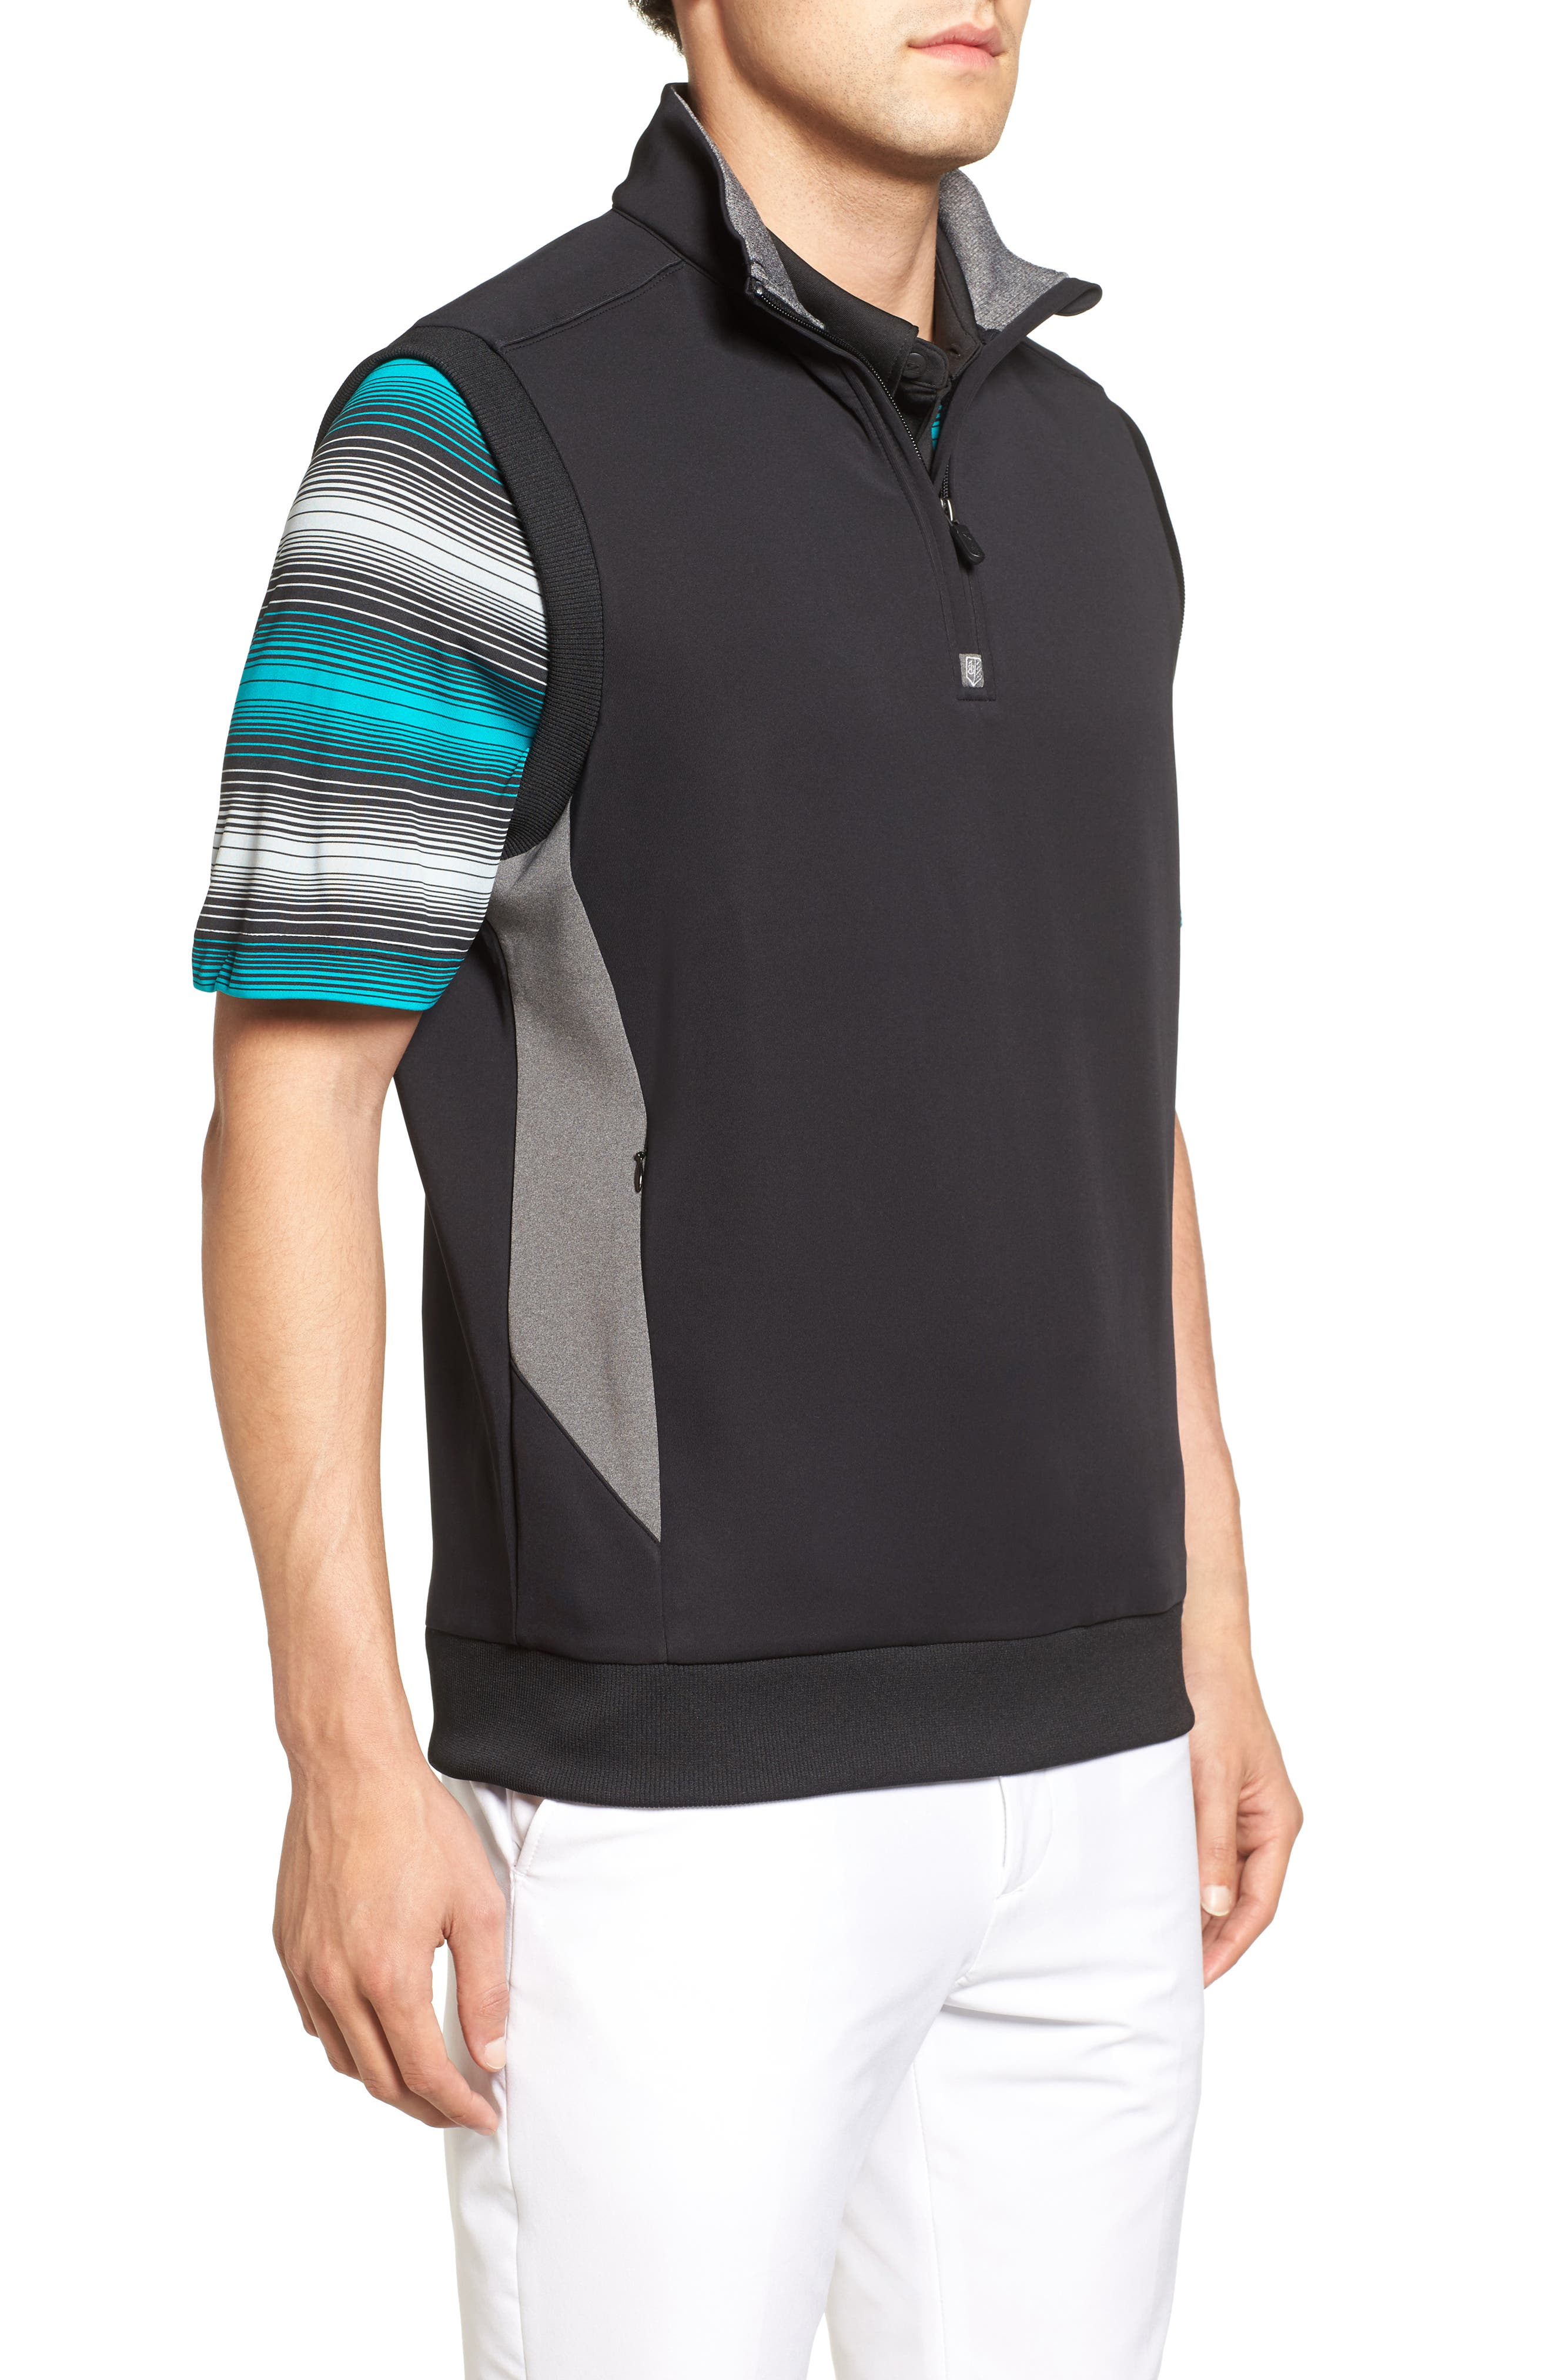 Alternate Image 3  - Bobby Jones Rule 18 Tech Quarter Zip Vest